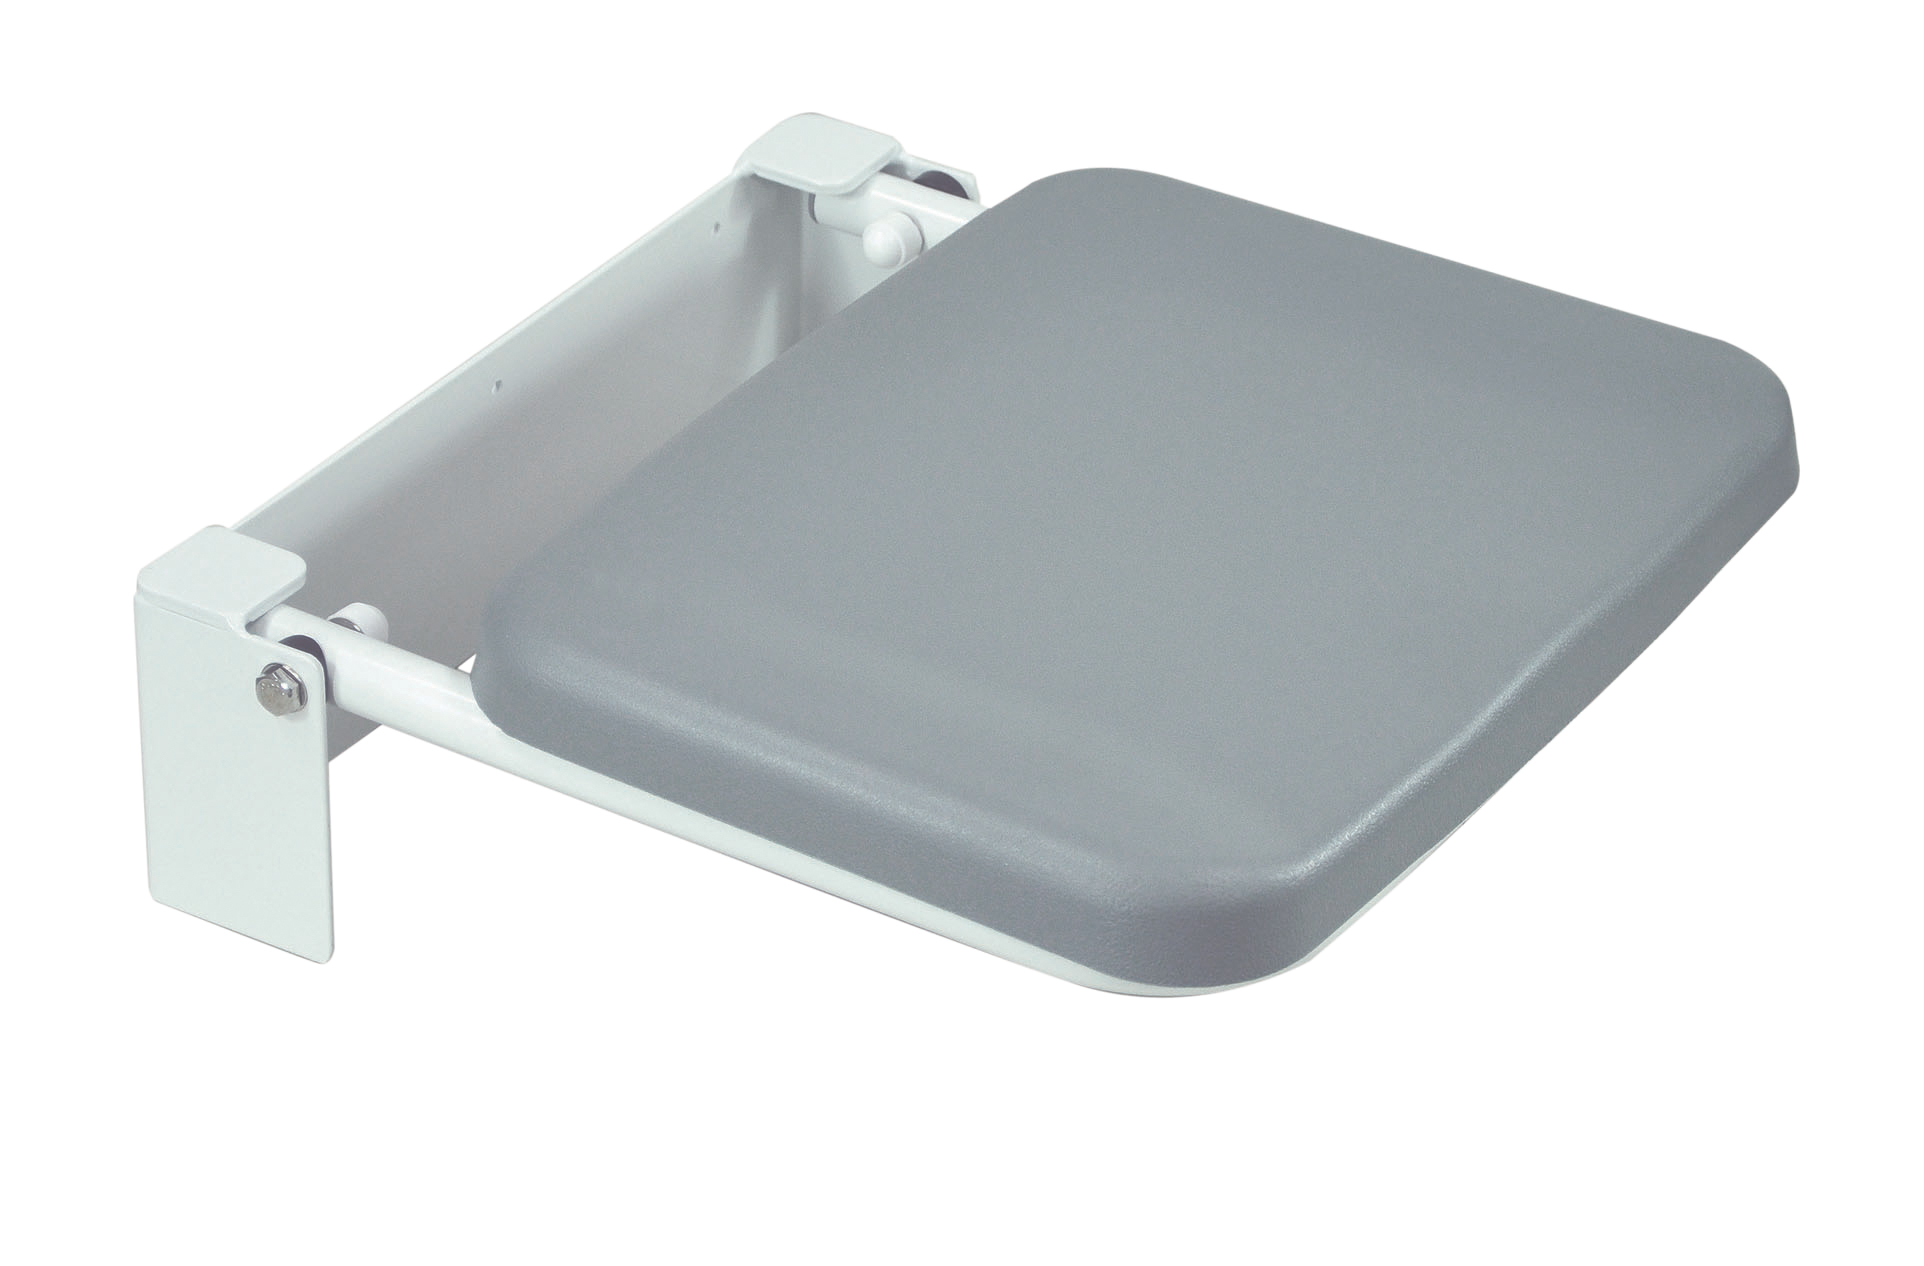 Solo Compact Padded Shower Seat Aidapt Mobility Aids & Independent ...